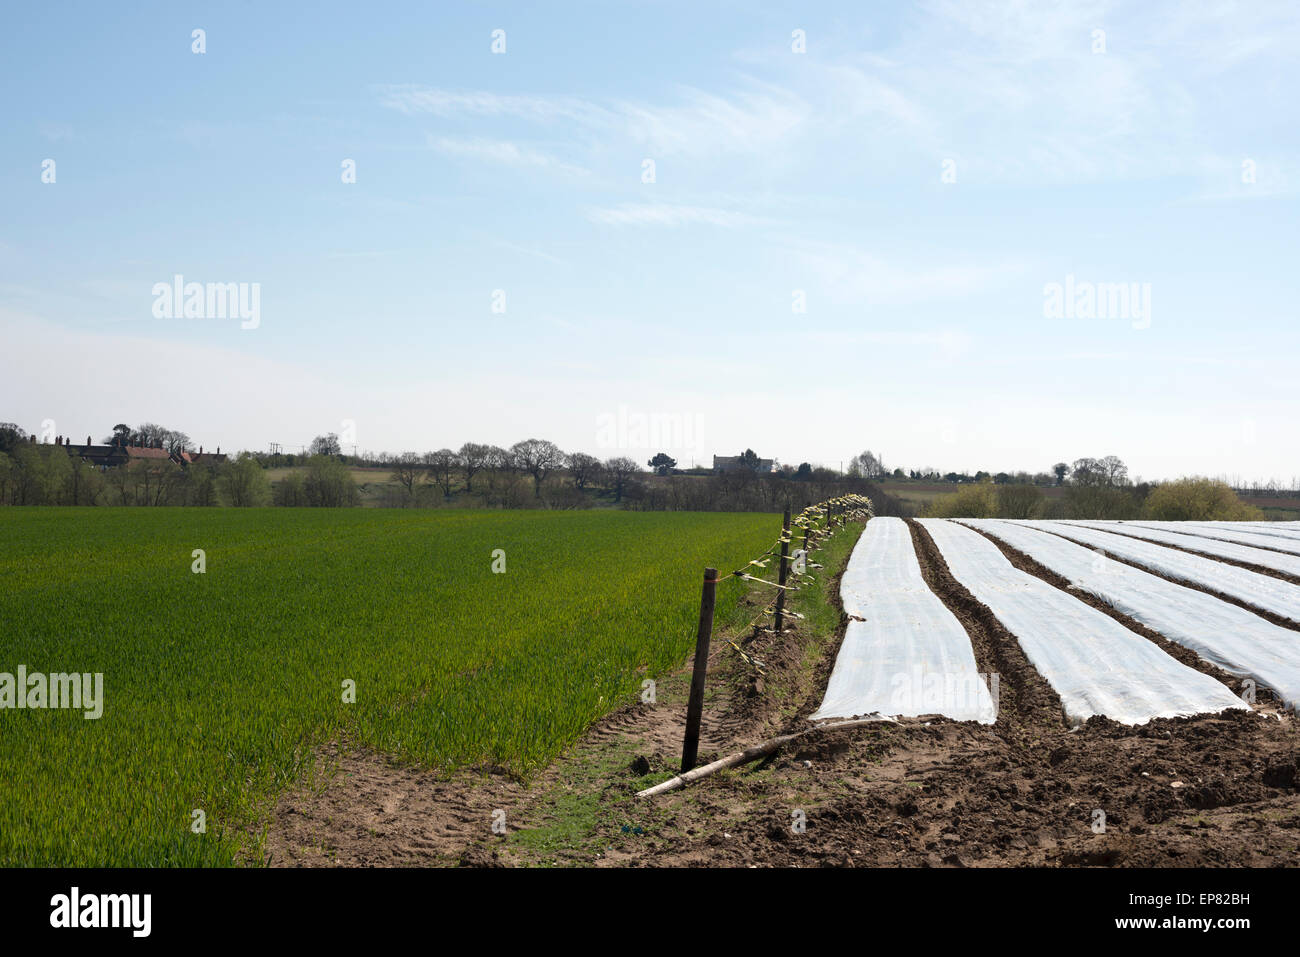 Carrots grown under plastic protection coverings beside a wheat field, Boyton, Suffolk, UK. Stock Photo